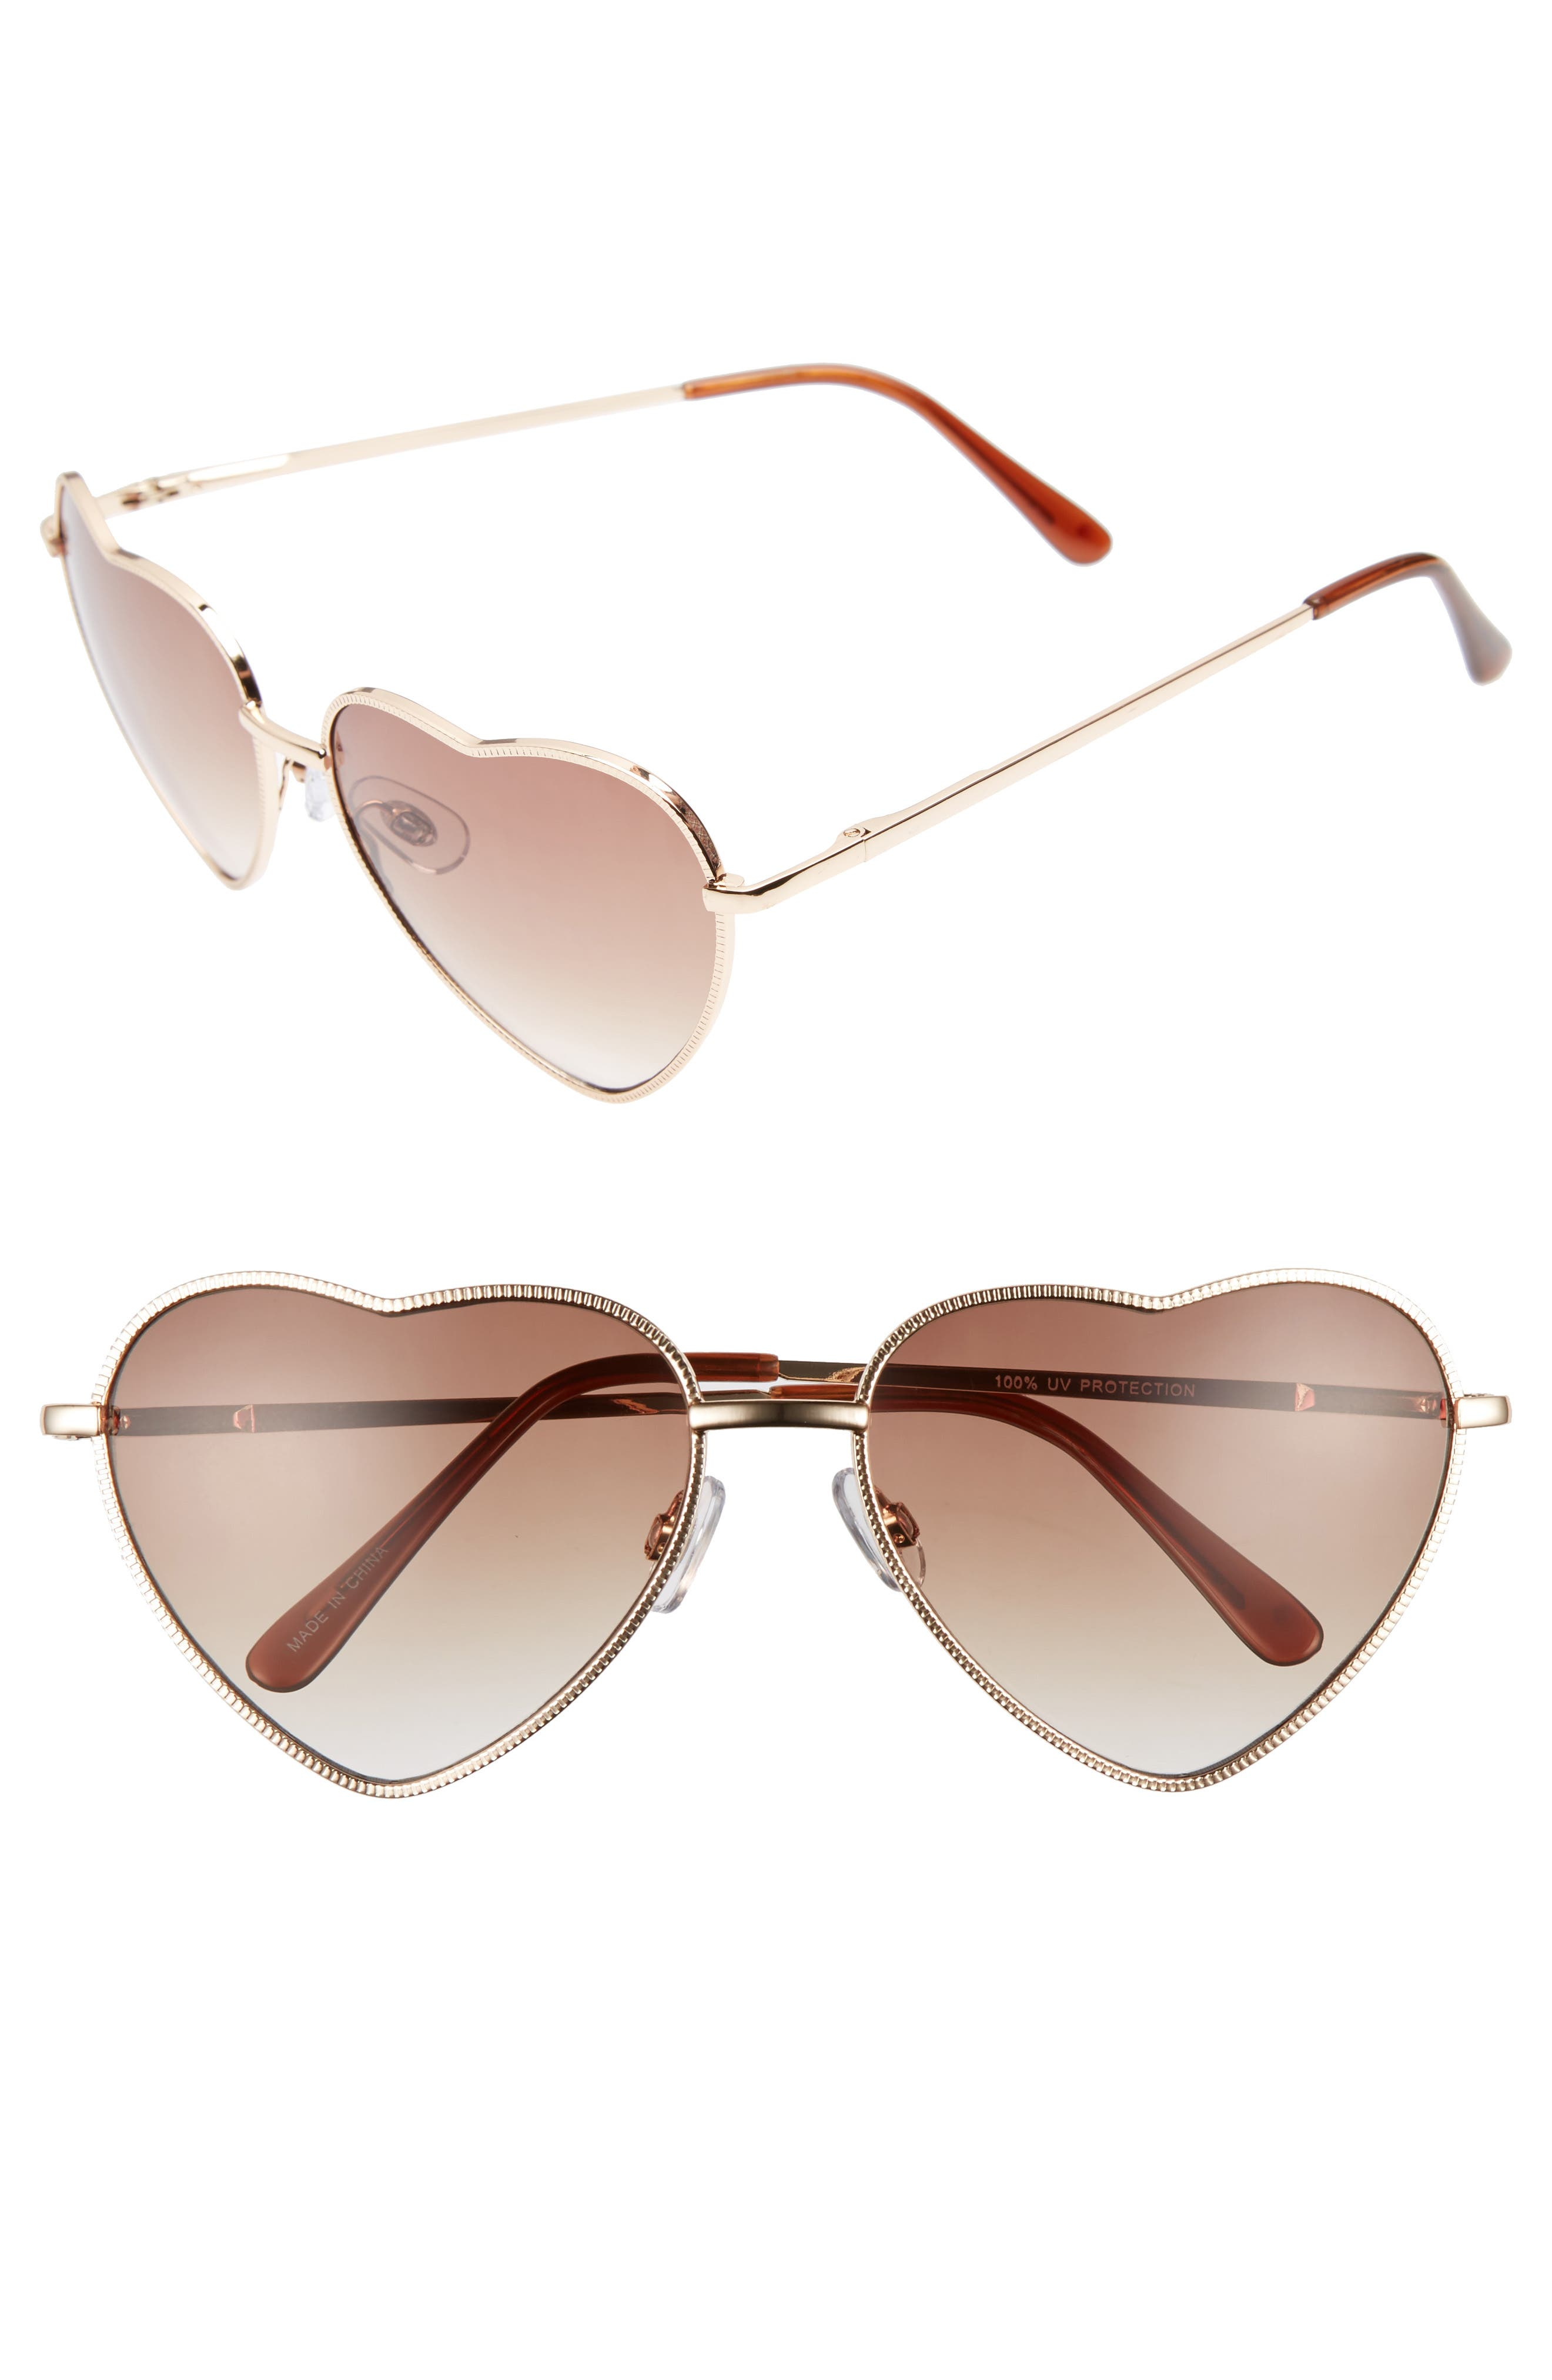 Heart Shaped 58mm Sunglasses,                             Alternate thumbnail 2, color,                             GOLD/ BROWN